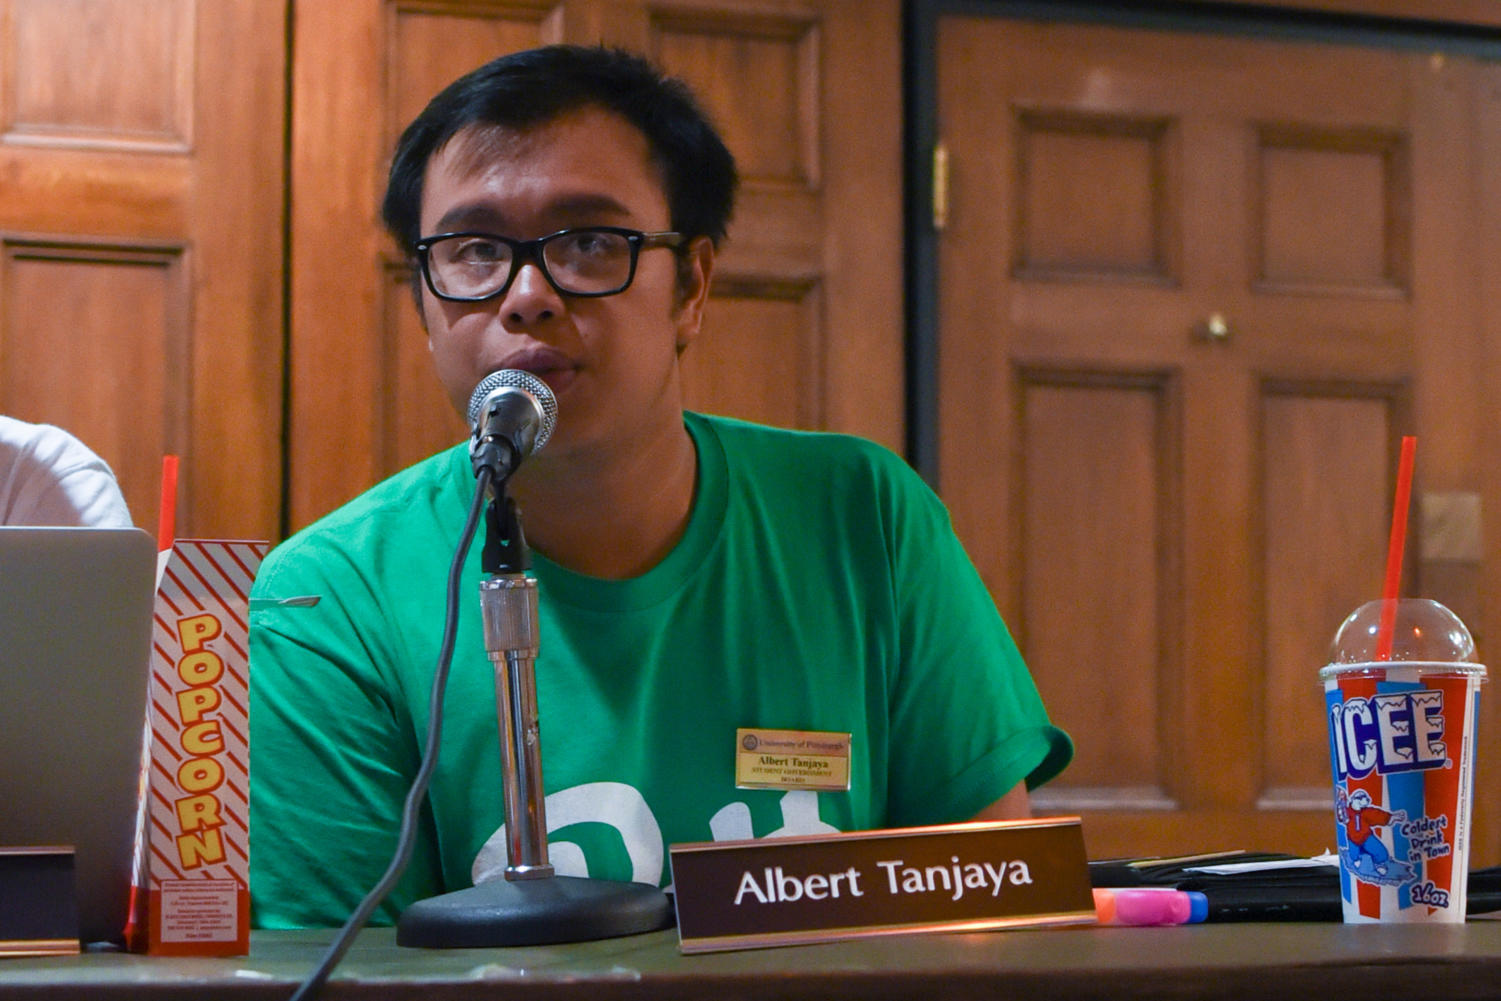 SGB Board member Albert Tanjaya discusses Hillman Library's hot-food policy at Tuesday night's public meeting. (Photo by Knox Coulter | Staff Photographer)